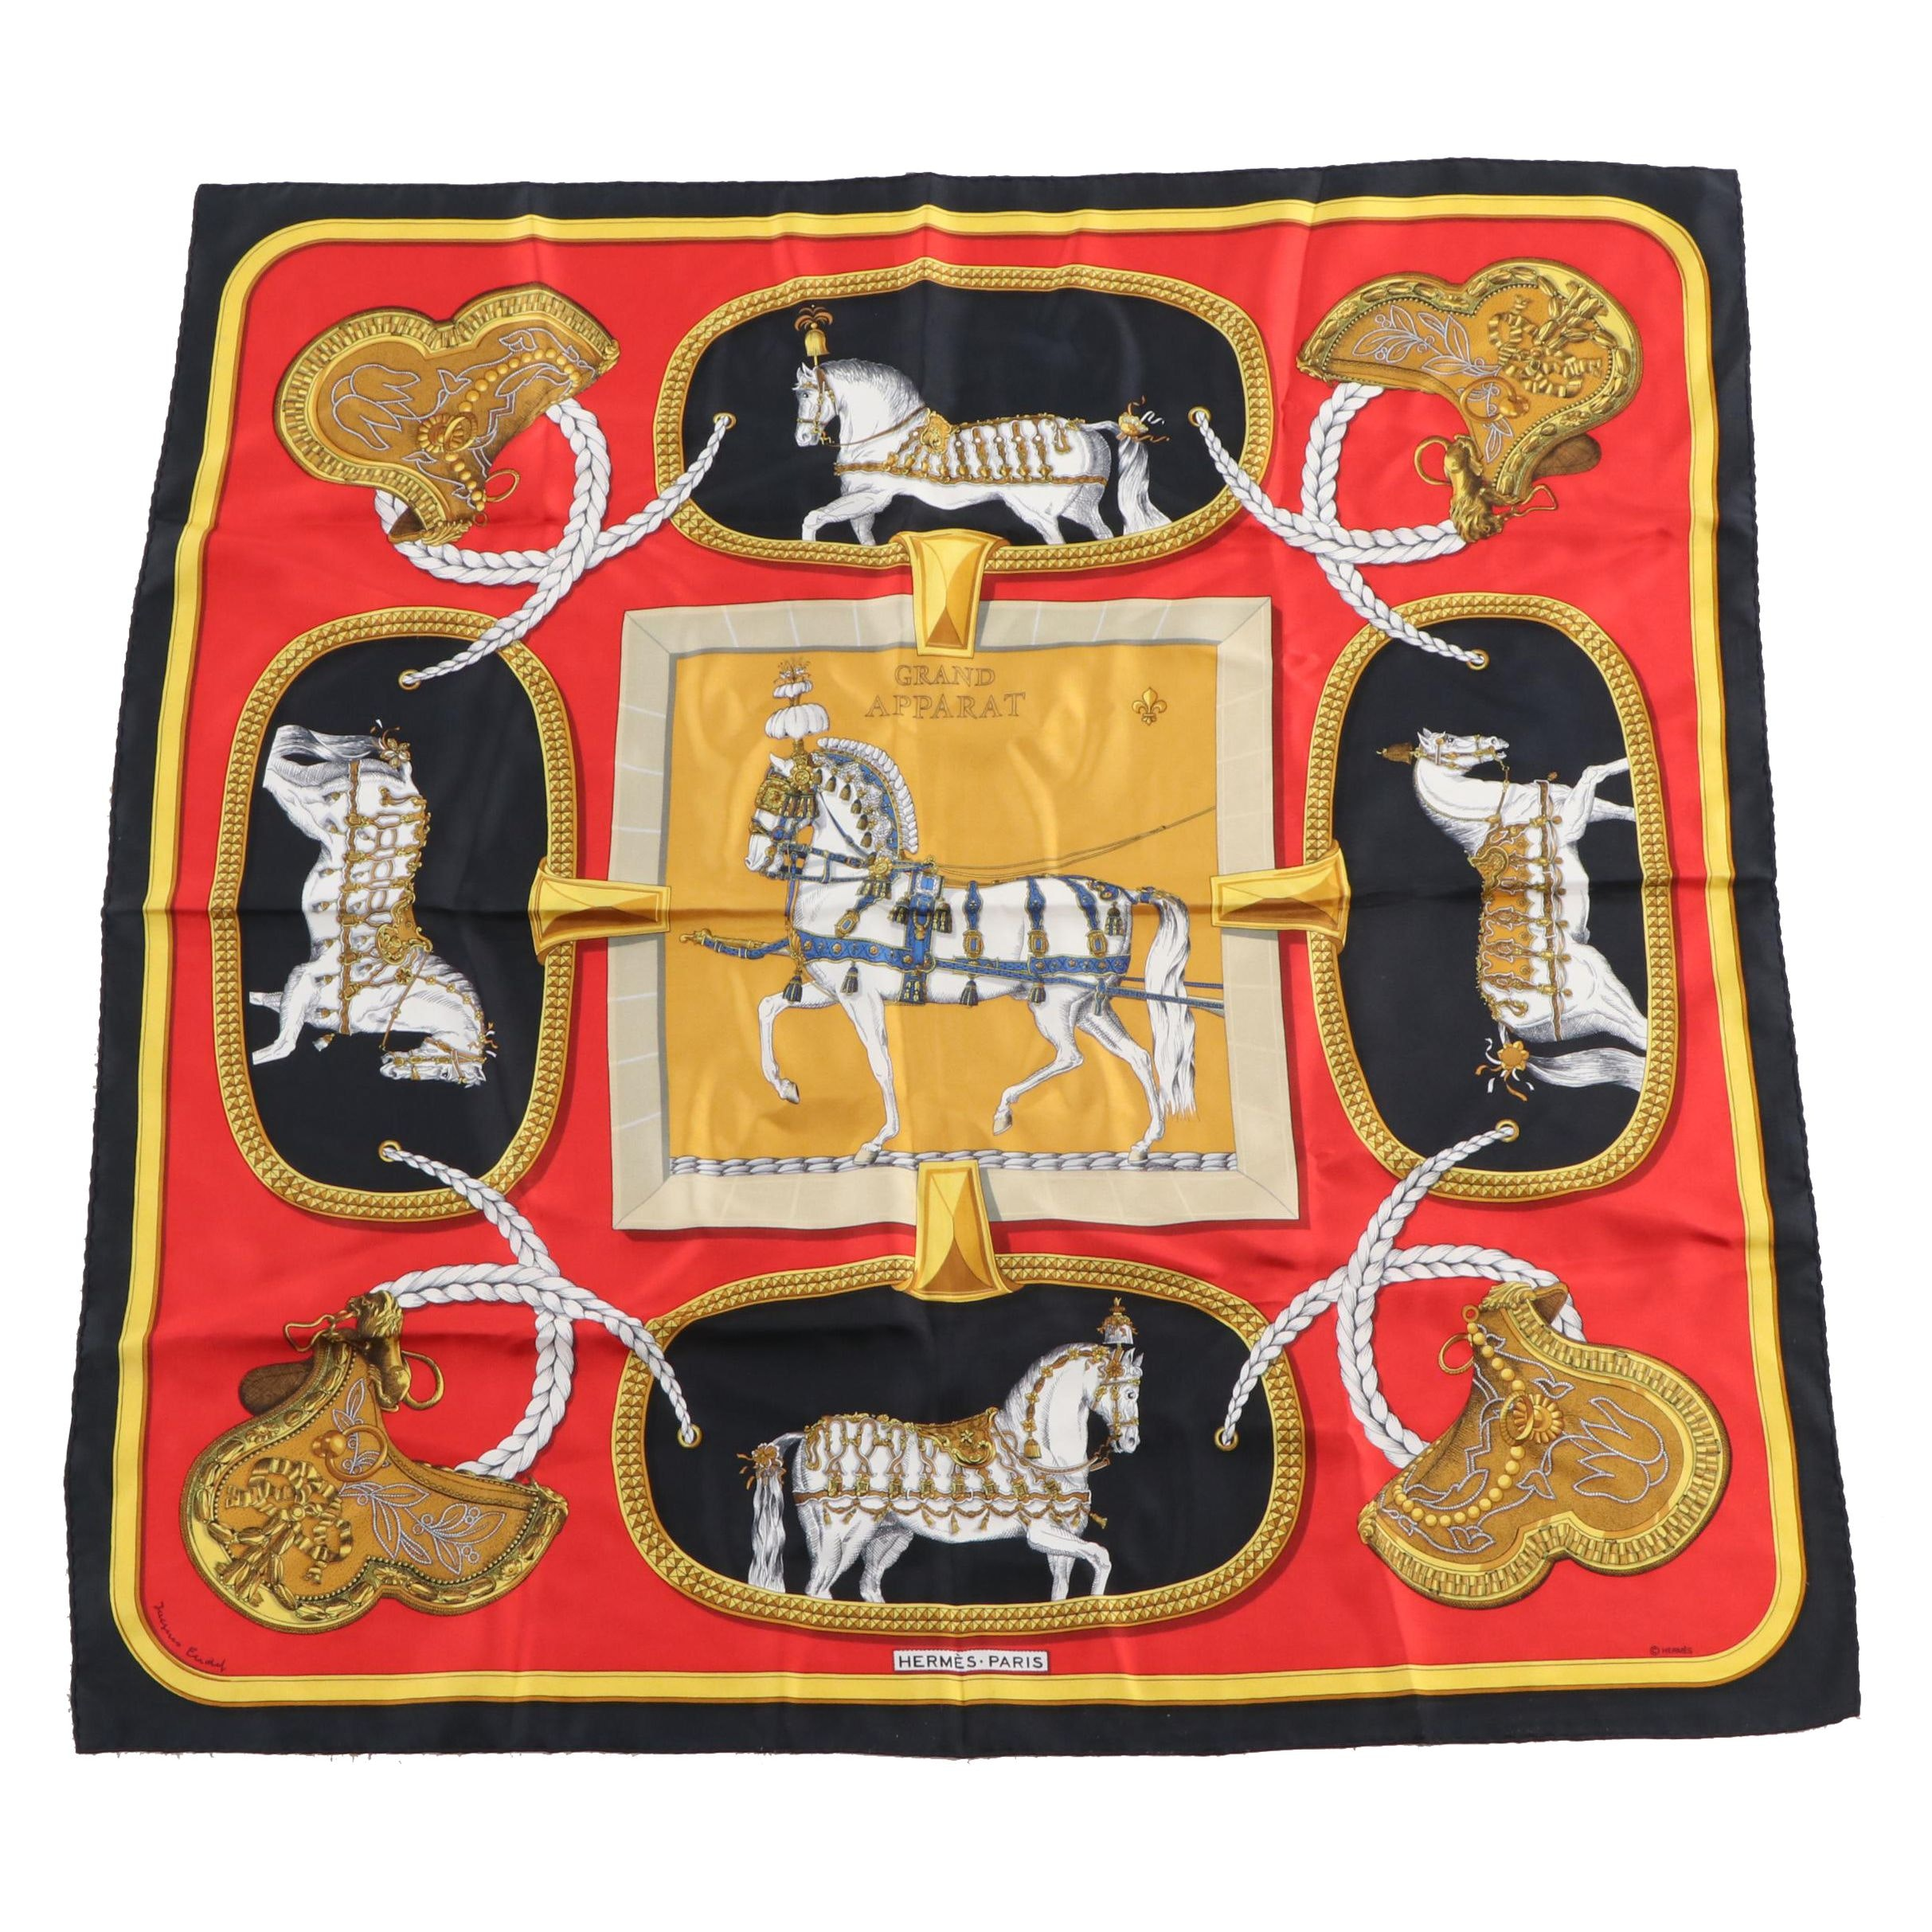 "Hermès Paris ""Grand Apparat"" Silk Scarf by Jacques Eudel, 1962 Vintage"